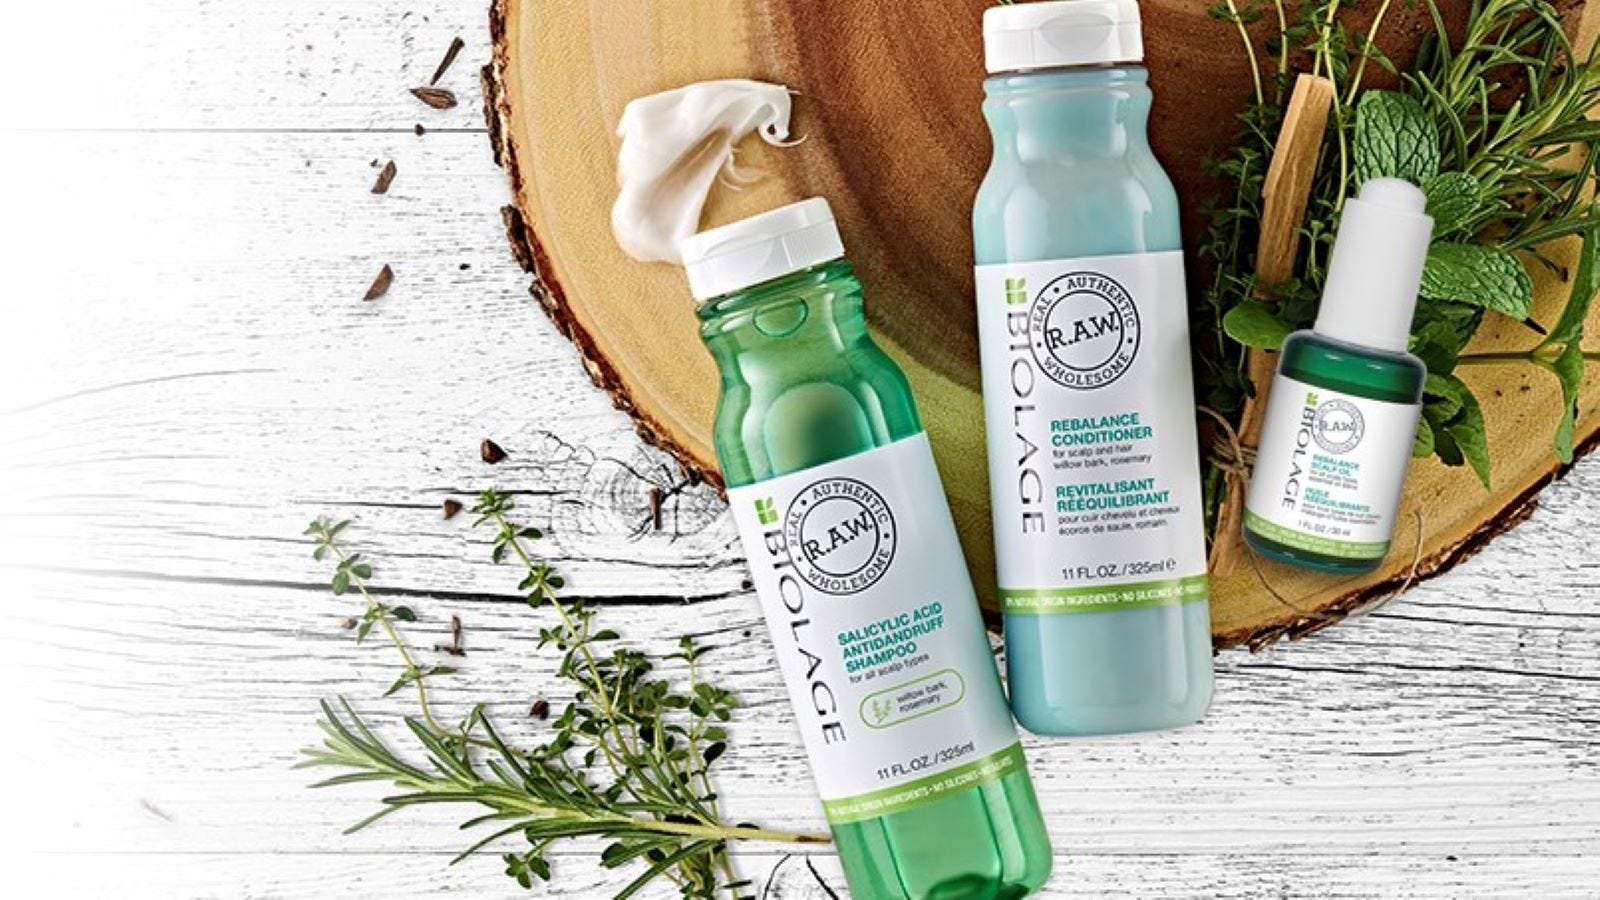 The Biolage R.A.W. Shampoo, Conditioner, and Scalp Oil surrounded by green leafy herbs.